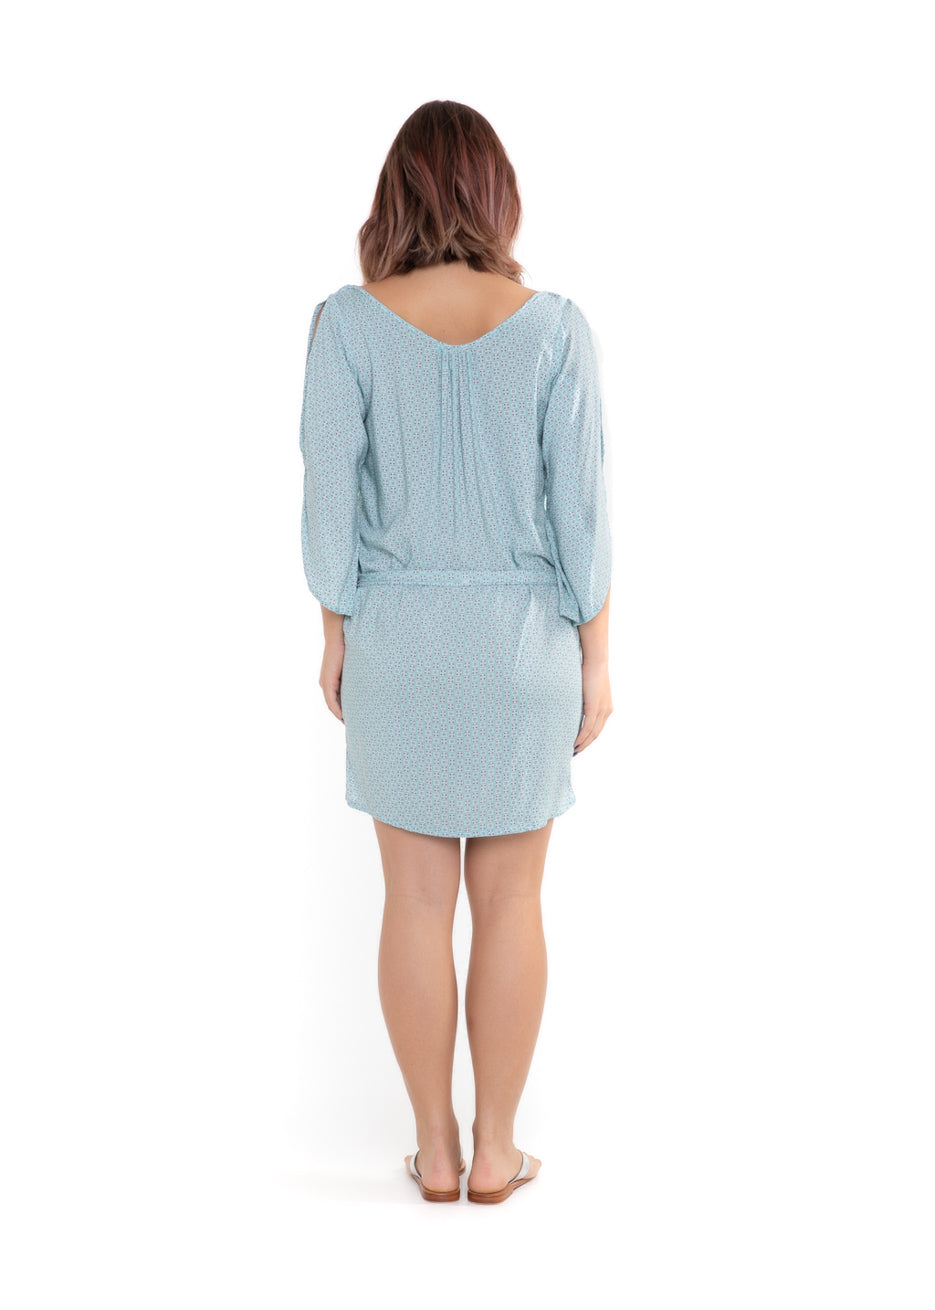 Dress Topsoul - Mint Star